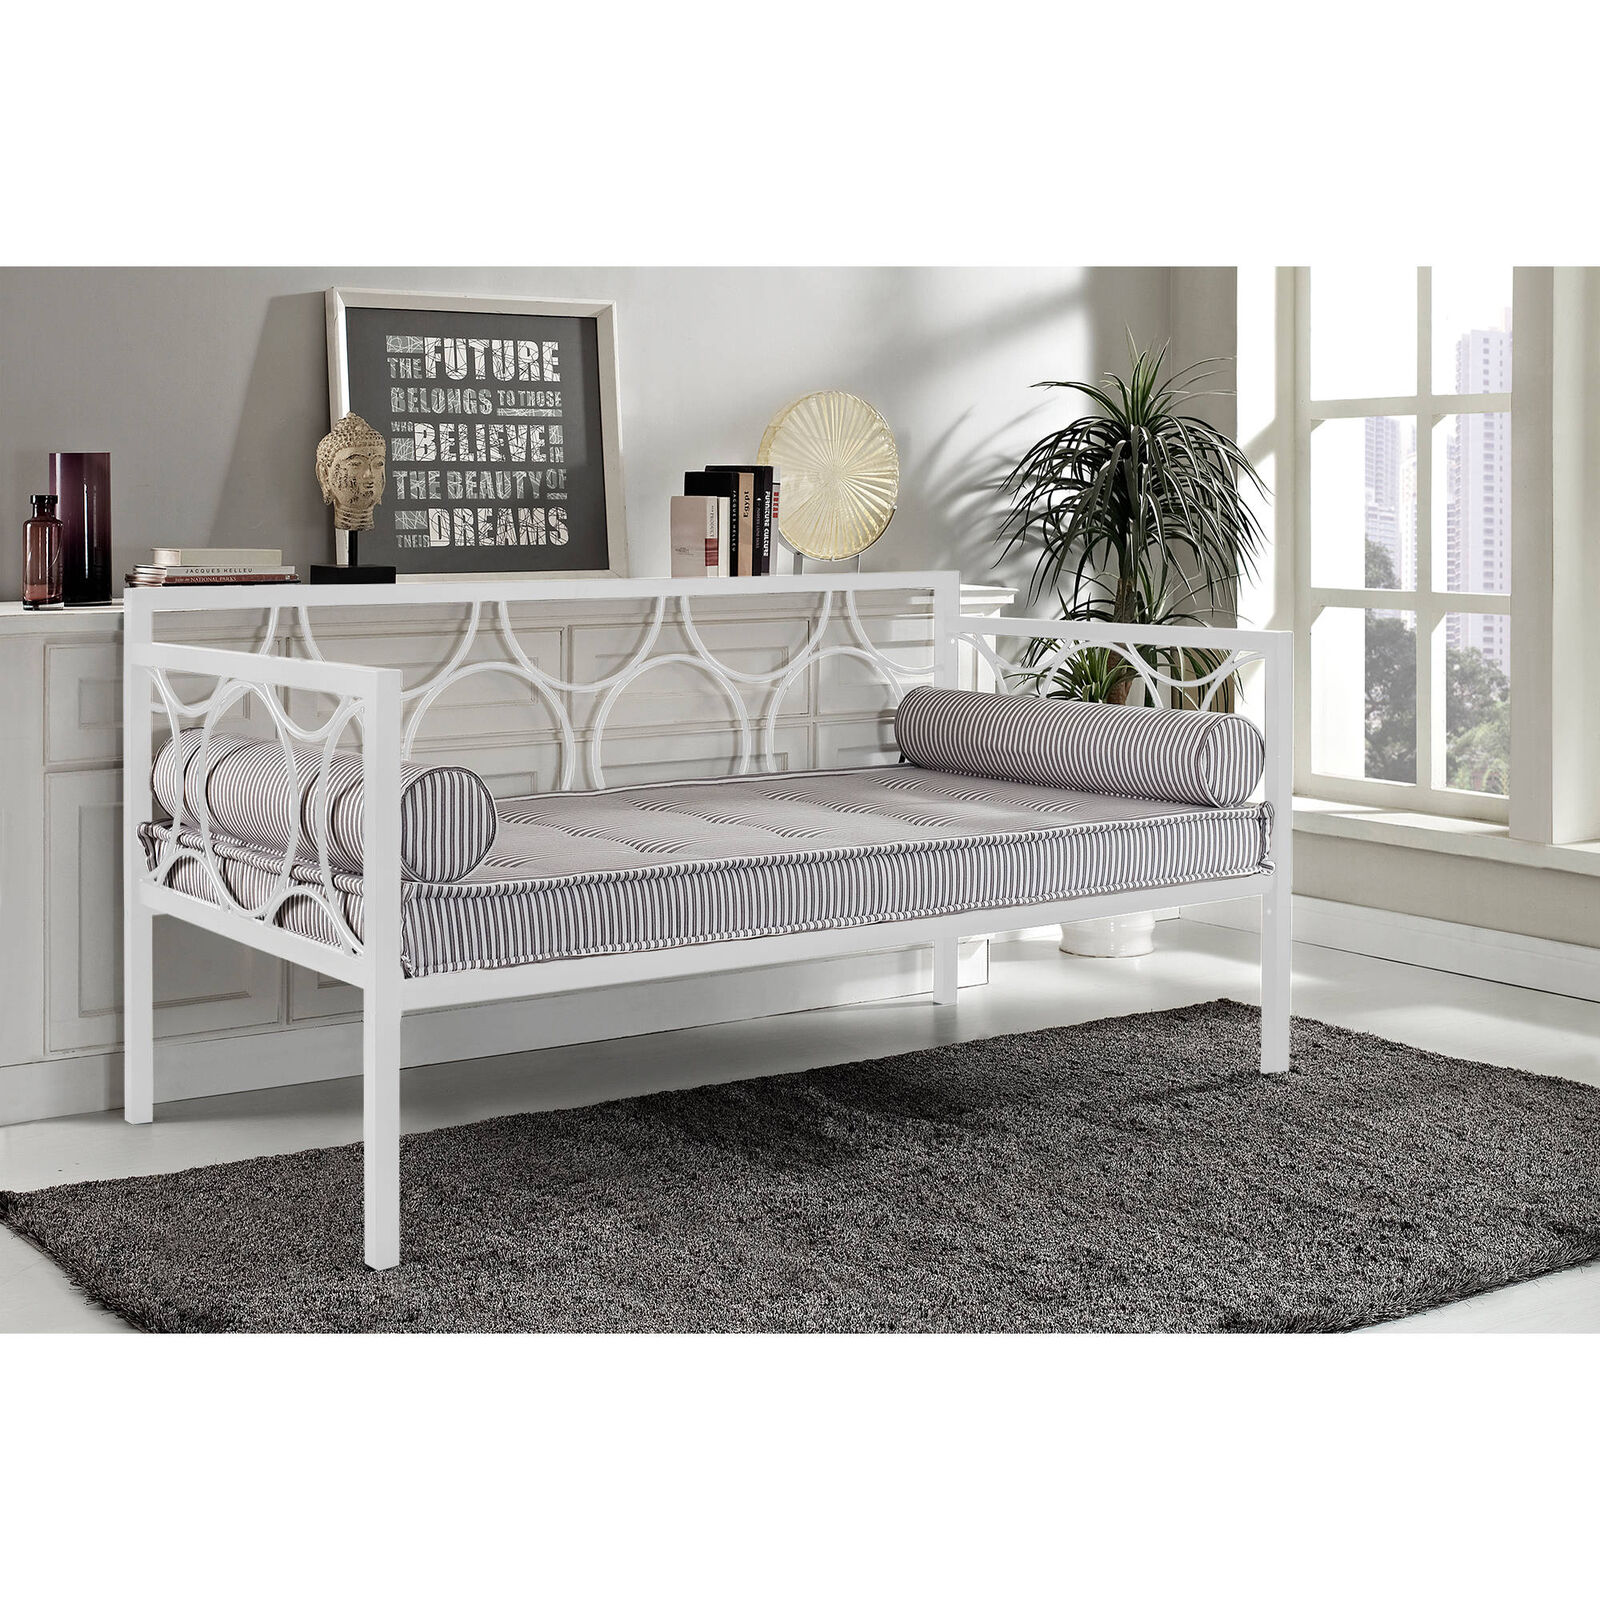 Details About White Metal Daybed Twin Size Frame Contemporary Guest Bed Bedroom Dorm Furniture